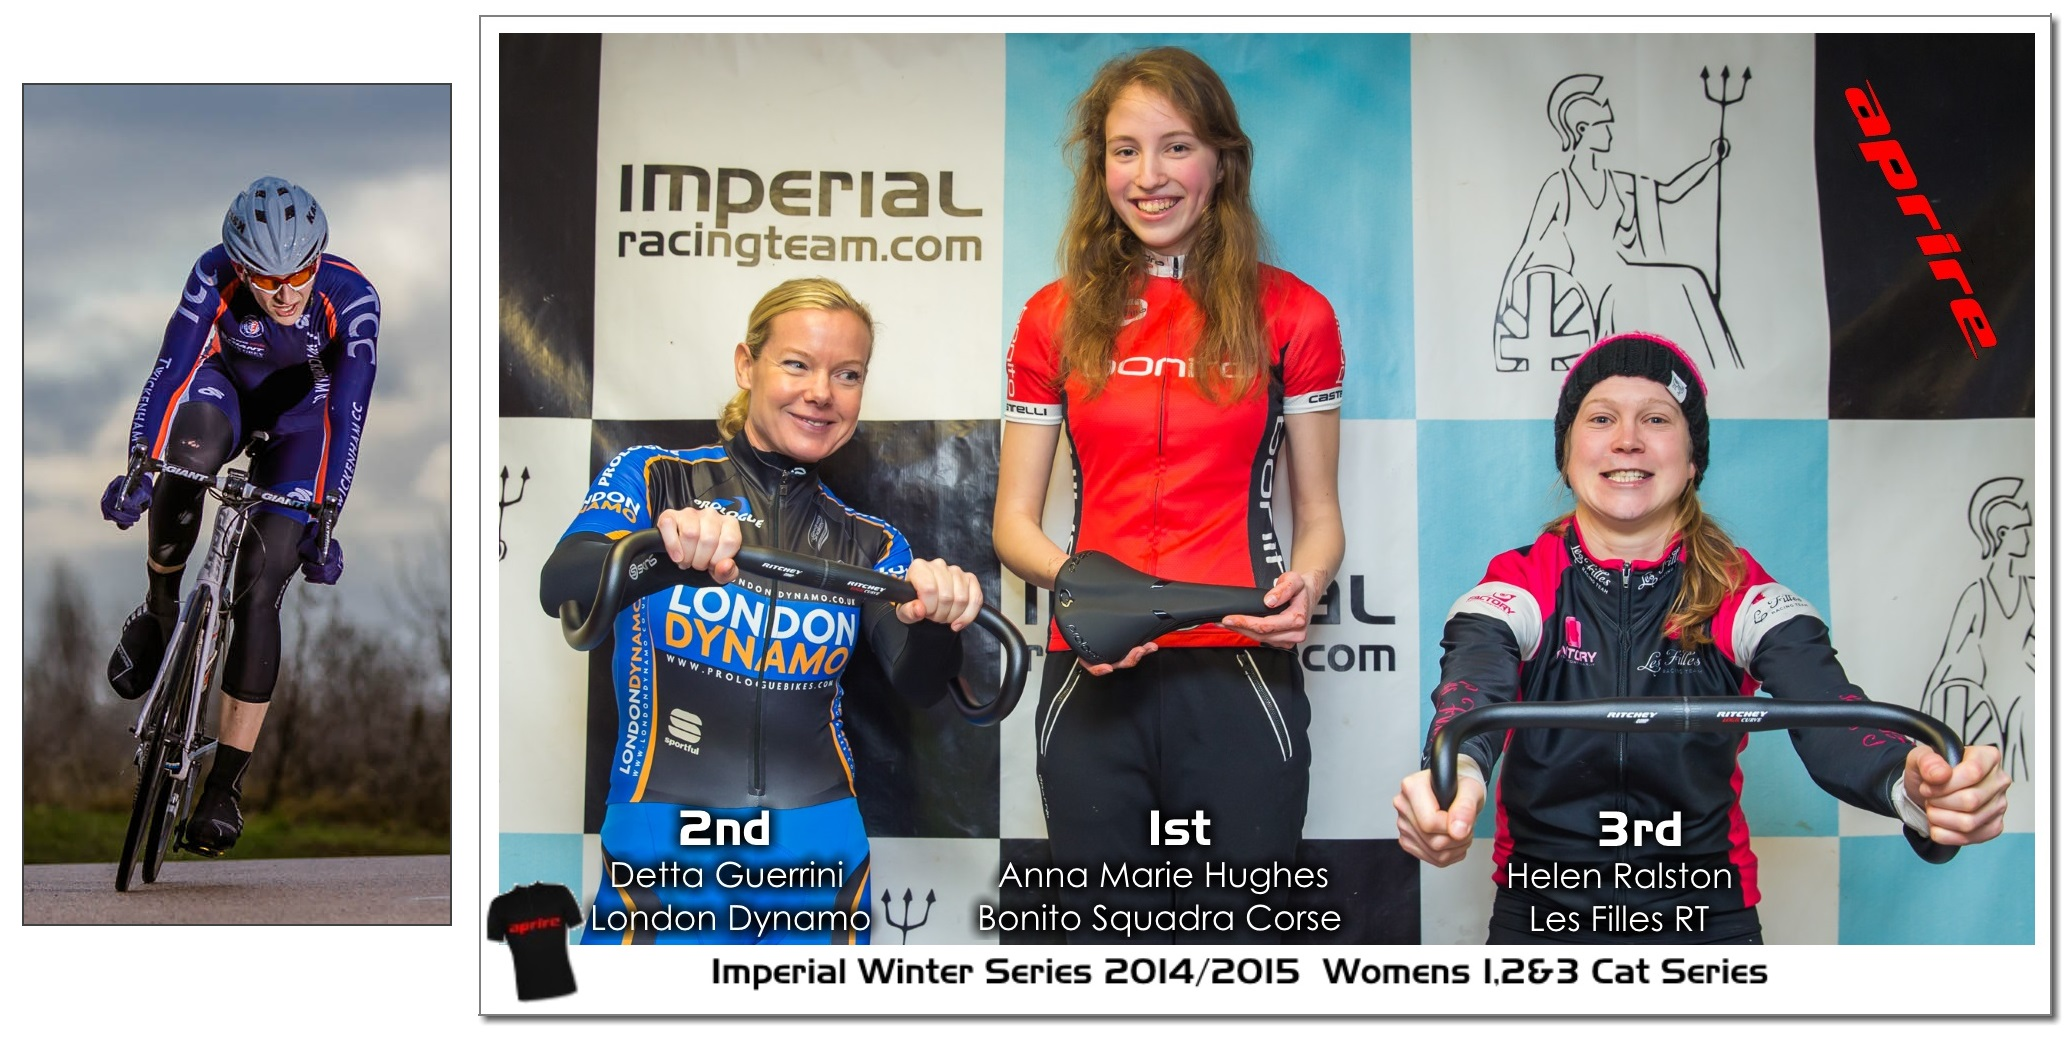 Imperial Winter Series 2014/2015 Class of 2014/2015 Anna Marie Hughes, Detta Guerrini, Helen Ralston